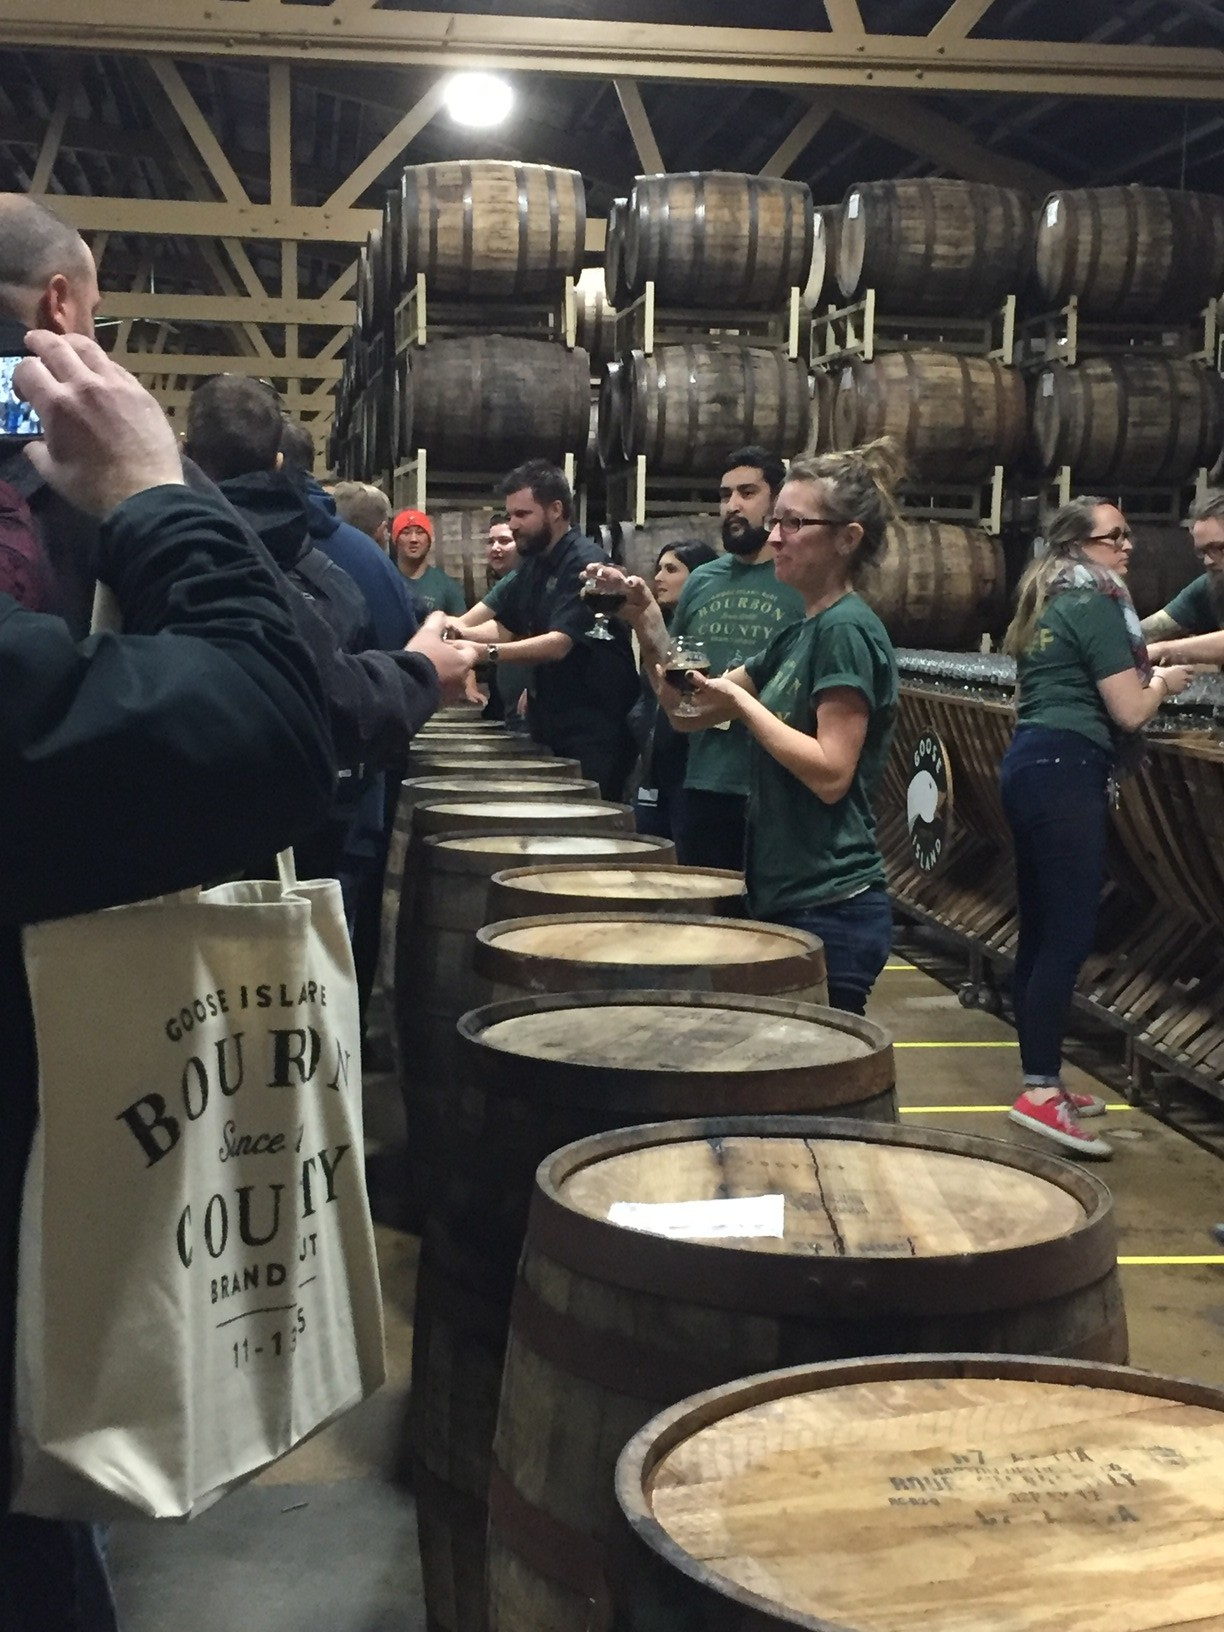 Goose Island employees hand out the Rare samples as people entered the Barrel House.